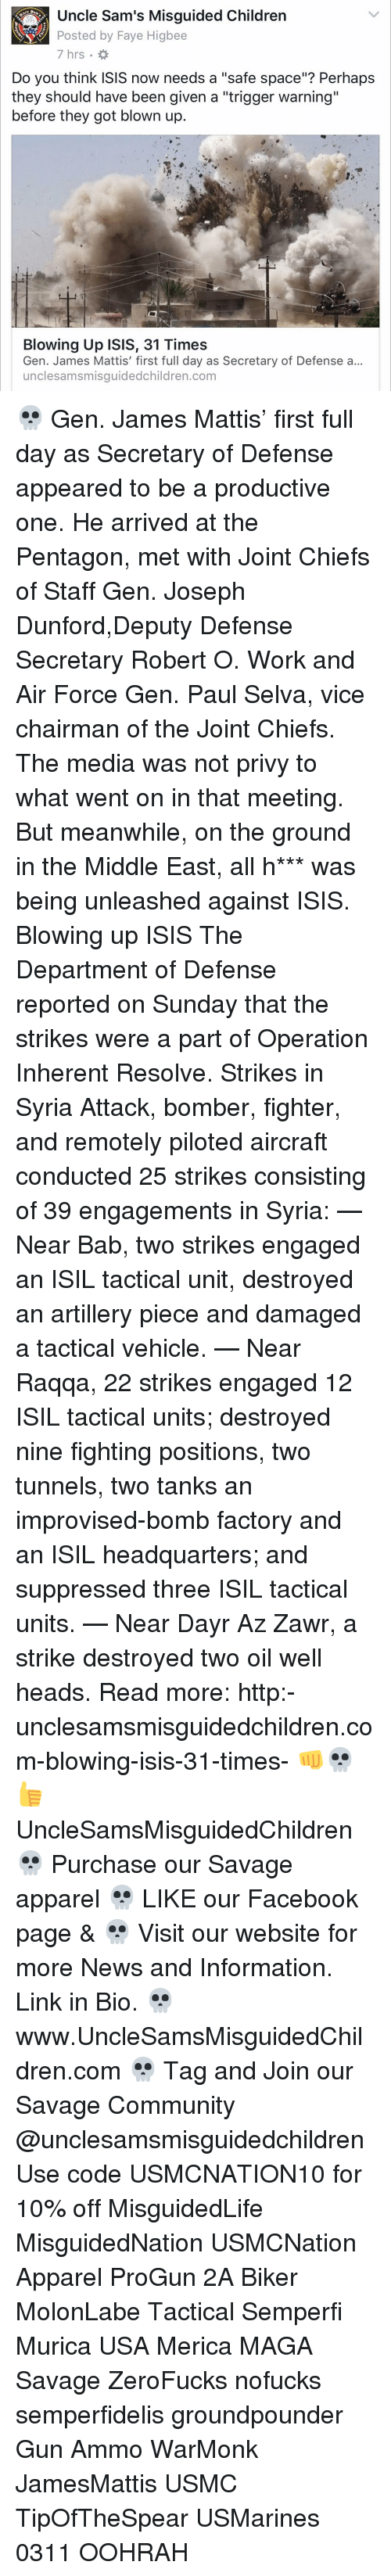 """James Mattis: Uncle Sam's Misguided Children  Posted by Faye Higbee  Do you think ISIS now needs a """"safe space""""? Perhaps  they should have been given a """"trigger warning""""  before they got blown up.  Blowing Up ISIS, 31 Times  Gen. James Mattis' first full day as Secretary of Defense a...  unclesamsmisguidedchildren.com 💀 Gen. James Mattis' first full day as Secretary of Defense appeared to be a productive one. He arrived at the Pentagon, met with Joint Chiefs of Staff Gen. Joseph Dunford,Deputy Defense Secretary Robert O. Work and Air Force Gen. Paul Selva, vice chairman of the Joint Chiefs. The media was not privy to what went on in that meeting. But meanwhile, on the ground in the Middle East, all h*** was being unleashed against ISIS. Blowing up ISIS The Department of Defense reported on Sunday that the strikes were a part of Operation Inherent Resolve. Strikes in Syria Attack, bomber, fighter, and remotely piloted aircraft conducted 25 strikes consisting of 39 engagements in Syria: — Near Bab, two strikes engaged an ISIL tactical unit, destroyed an artillery piece and damaged a tactical vehicle. — Near Raqqa, 22 strikes engaged 12 ISIL tactical units; destroyed nine fighting positions, two tunnels, two tanks an improvised-bomb factory and an ISIL headquarters; and suppressed three ISIL tactical units. — Near Dayr Az Zawr, a strike destroyed two oil well heads. Read more: http:-unclesamsmisguidedchildren.com-blowing-isis-31-times- 👊💀👍 UncleSamsMisguidedChildren 💀 Purchase our Savage apparel 💀 LIKE our Facebook page & 💀 Visit our website for more News and Information. Link in Bio. 💀 www.UncleSamsMisguidedChildren.com 💀 Tag and Join our Savage Community @unclesamsmisguidedchildren Use code USMCNATION10 for 10% off MisguidedLife MisguidedNation USMCNation Apparel ProGun 2A Biker MolonLabe Tactical Semperfi Murica USA Merica MAGA Savage ZeroFucks nofucks semperfidelis groundpounder Gun Ammo WarMonk JamesMattis USMC TipOfTheSpear USMarines 0311 OOHRAH"""